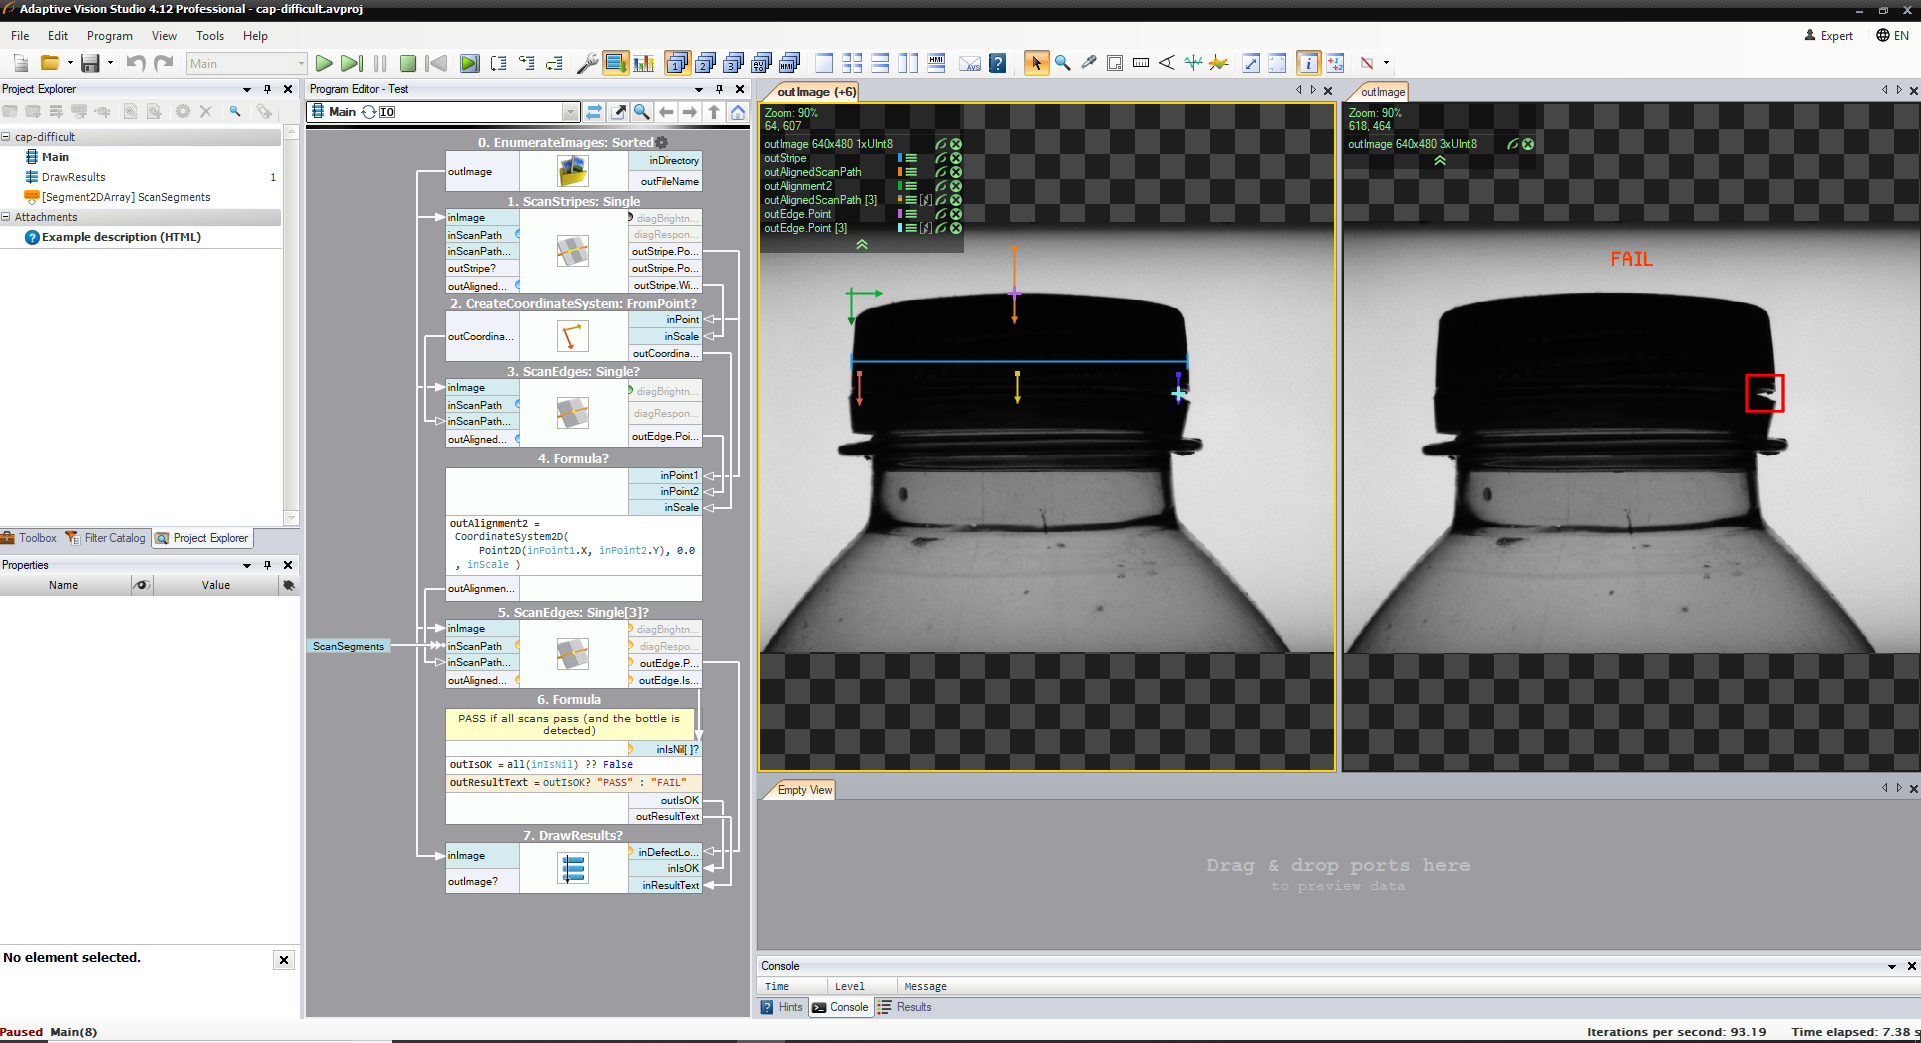 Screenshot Image of Bottlecap Inspection in Adaptive Vision Studio